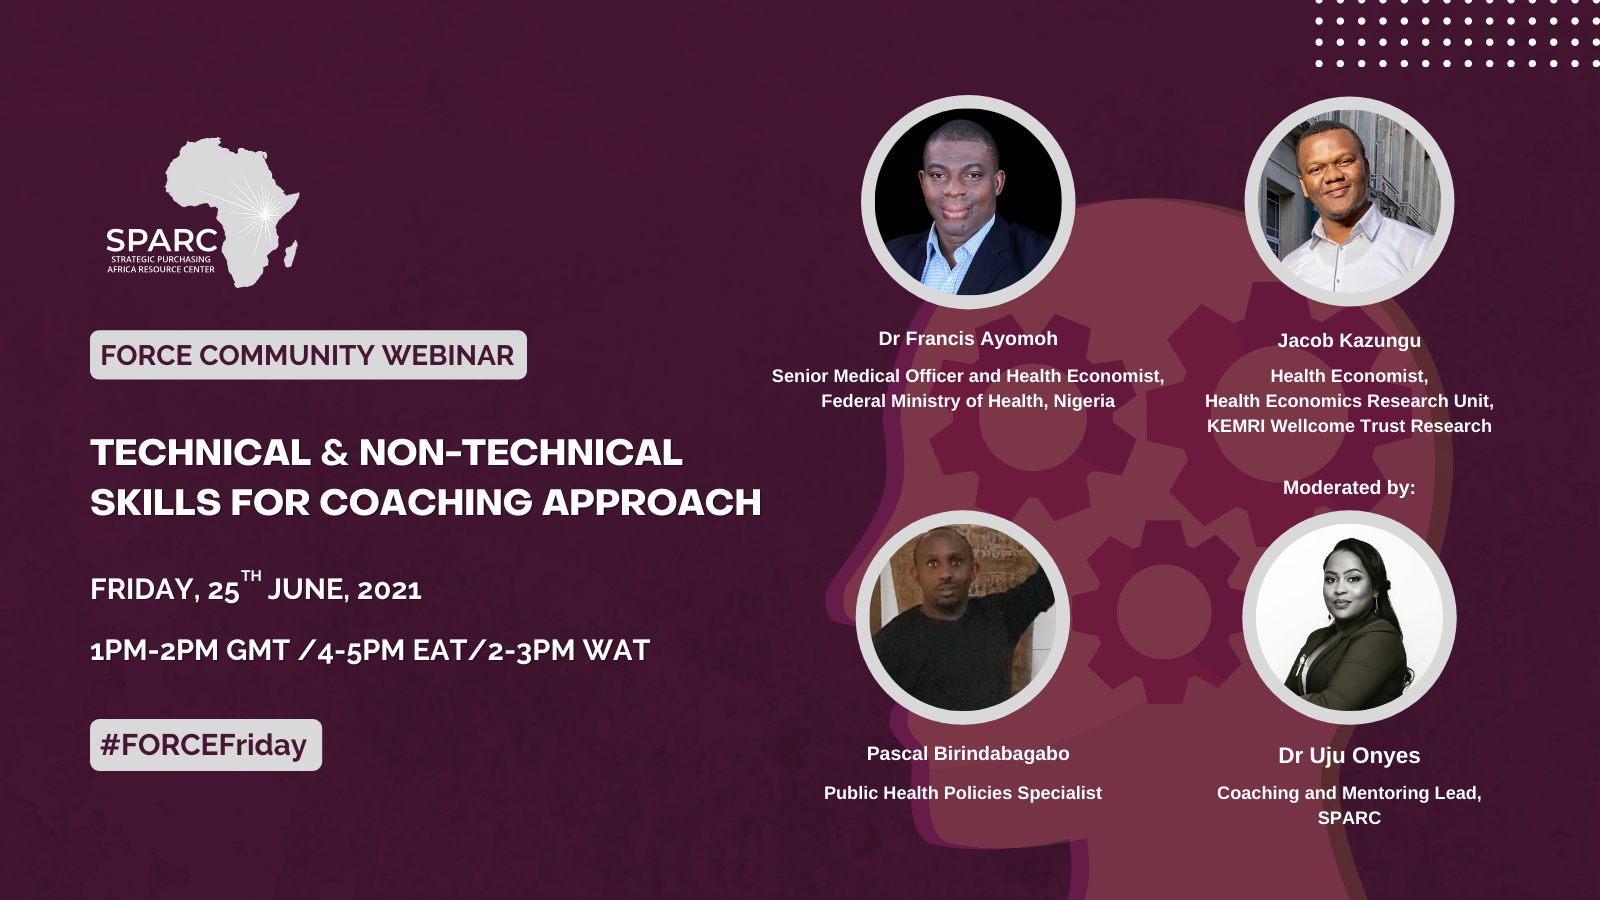 Key Messages from the June FORCE Community Webinar: Exploring the Technical and Non-technical Skills for the Coaching Approach